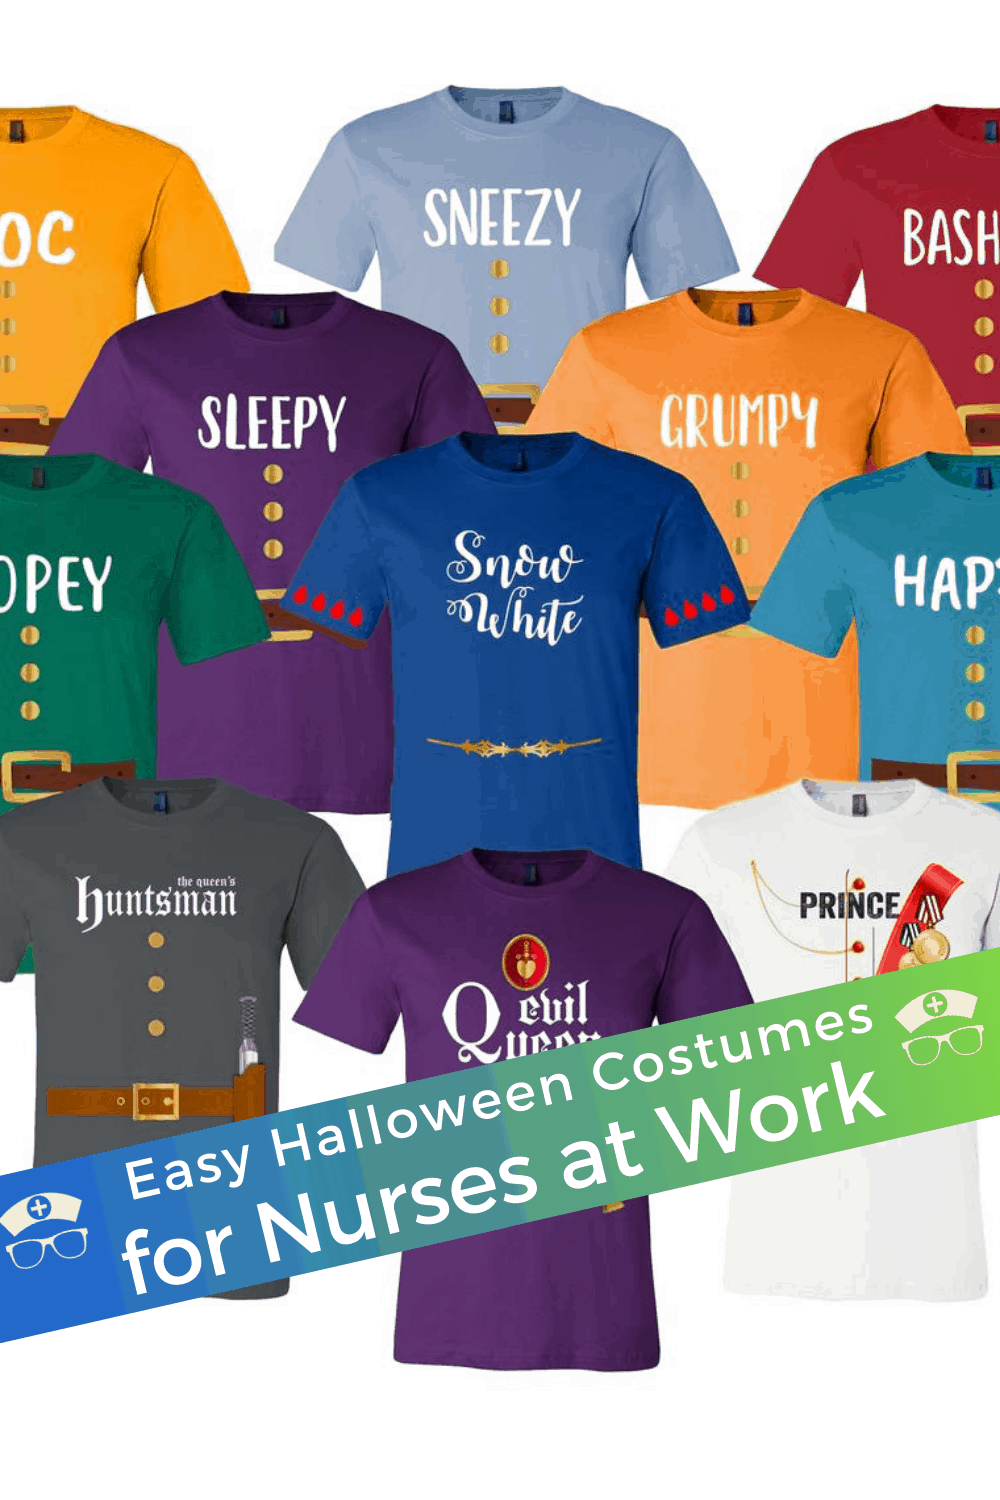 Easy Halloween Costumes for Nurses at Work. Dress up for Halloween at work as a nurse. These easy Halloween costumes for nurses are work-safe, not scary, and really fun! #thenerdynurse #nurse #nurses #halloween #nursecostume #scrubcostume